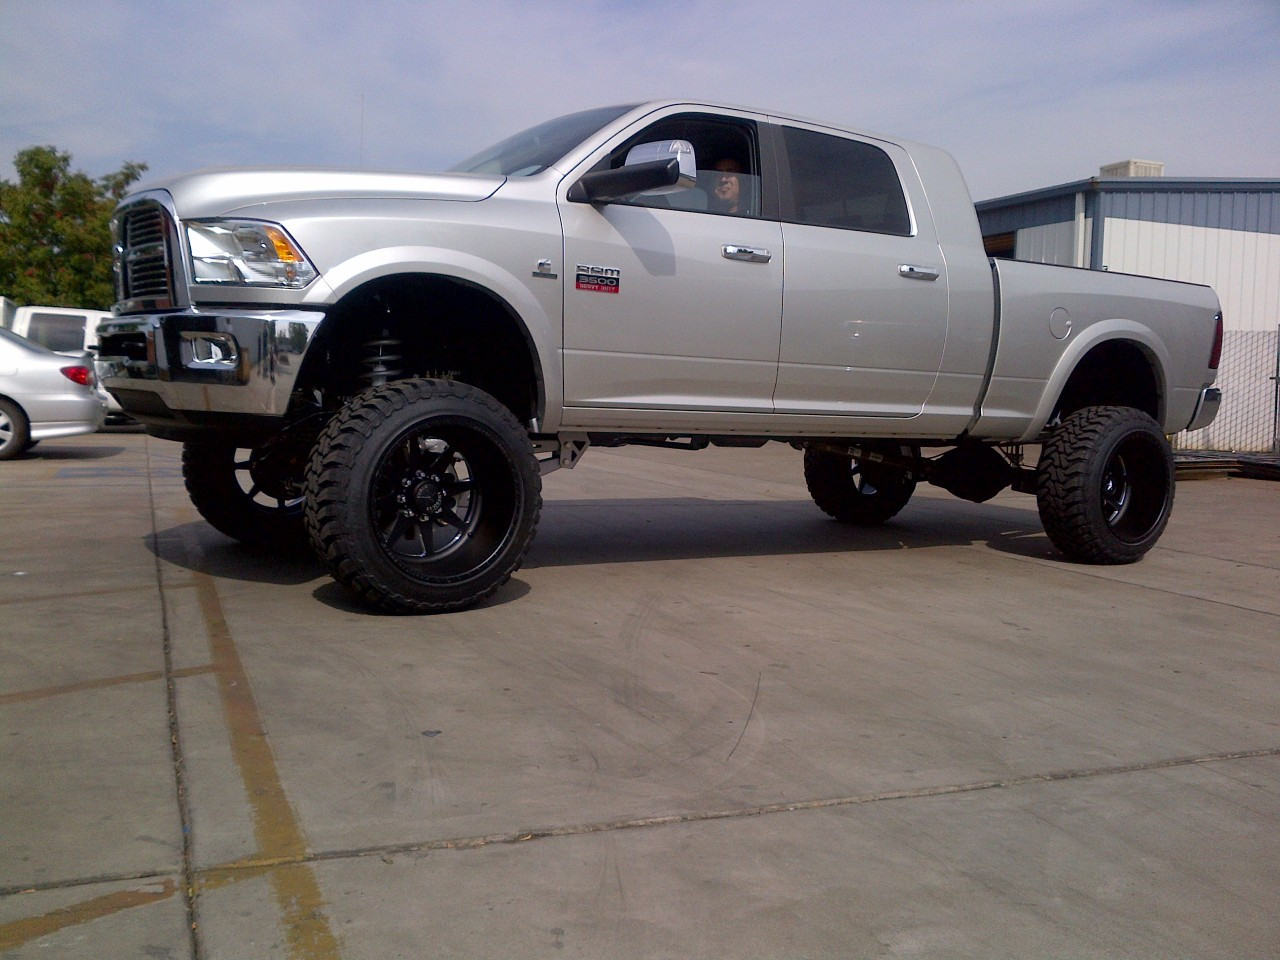 2012 Dodge Ram 2500 Lifted White 2009 2012 Dodge Ram 2500 Lift